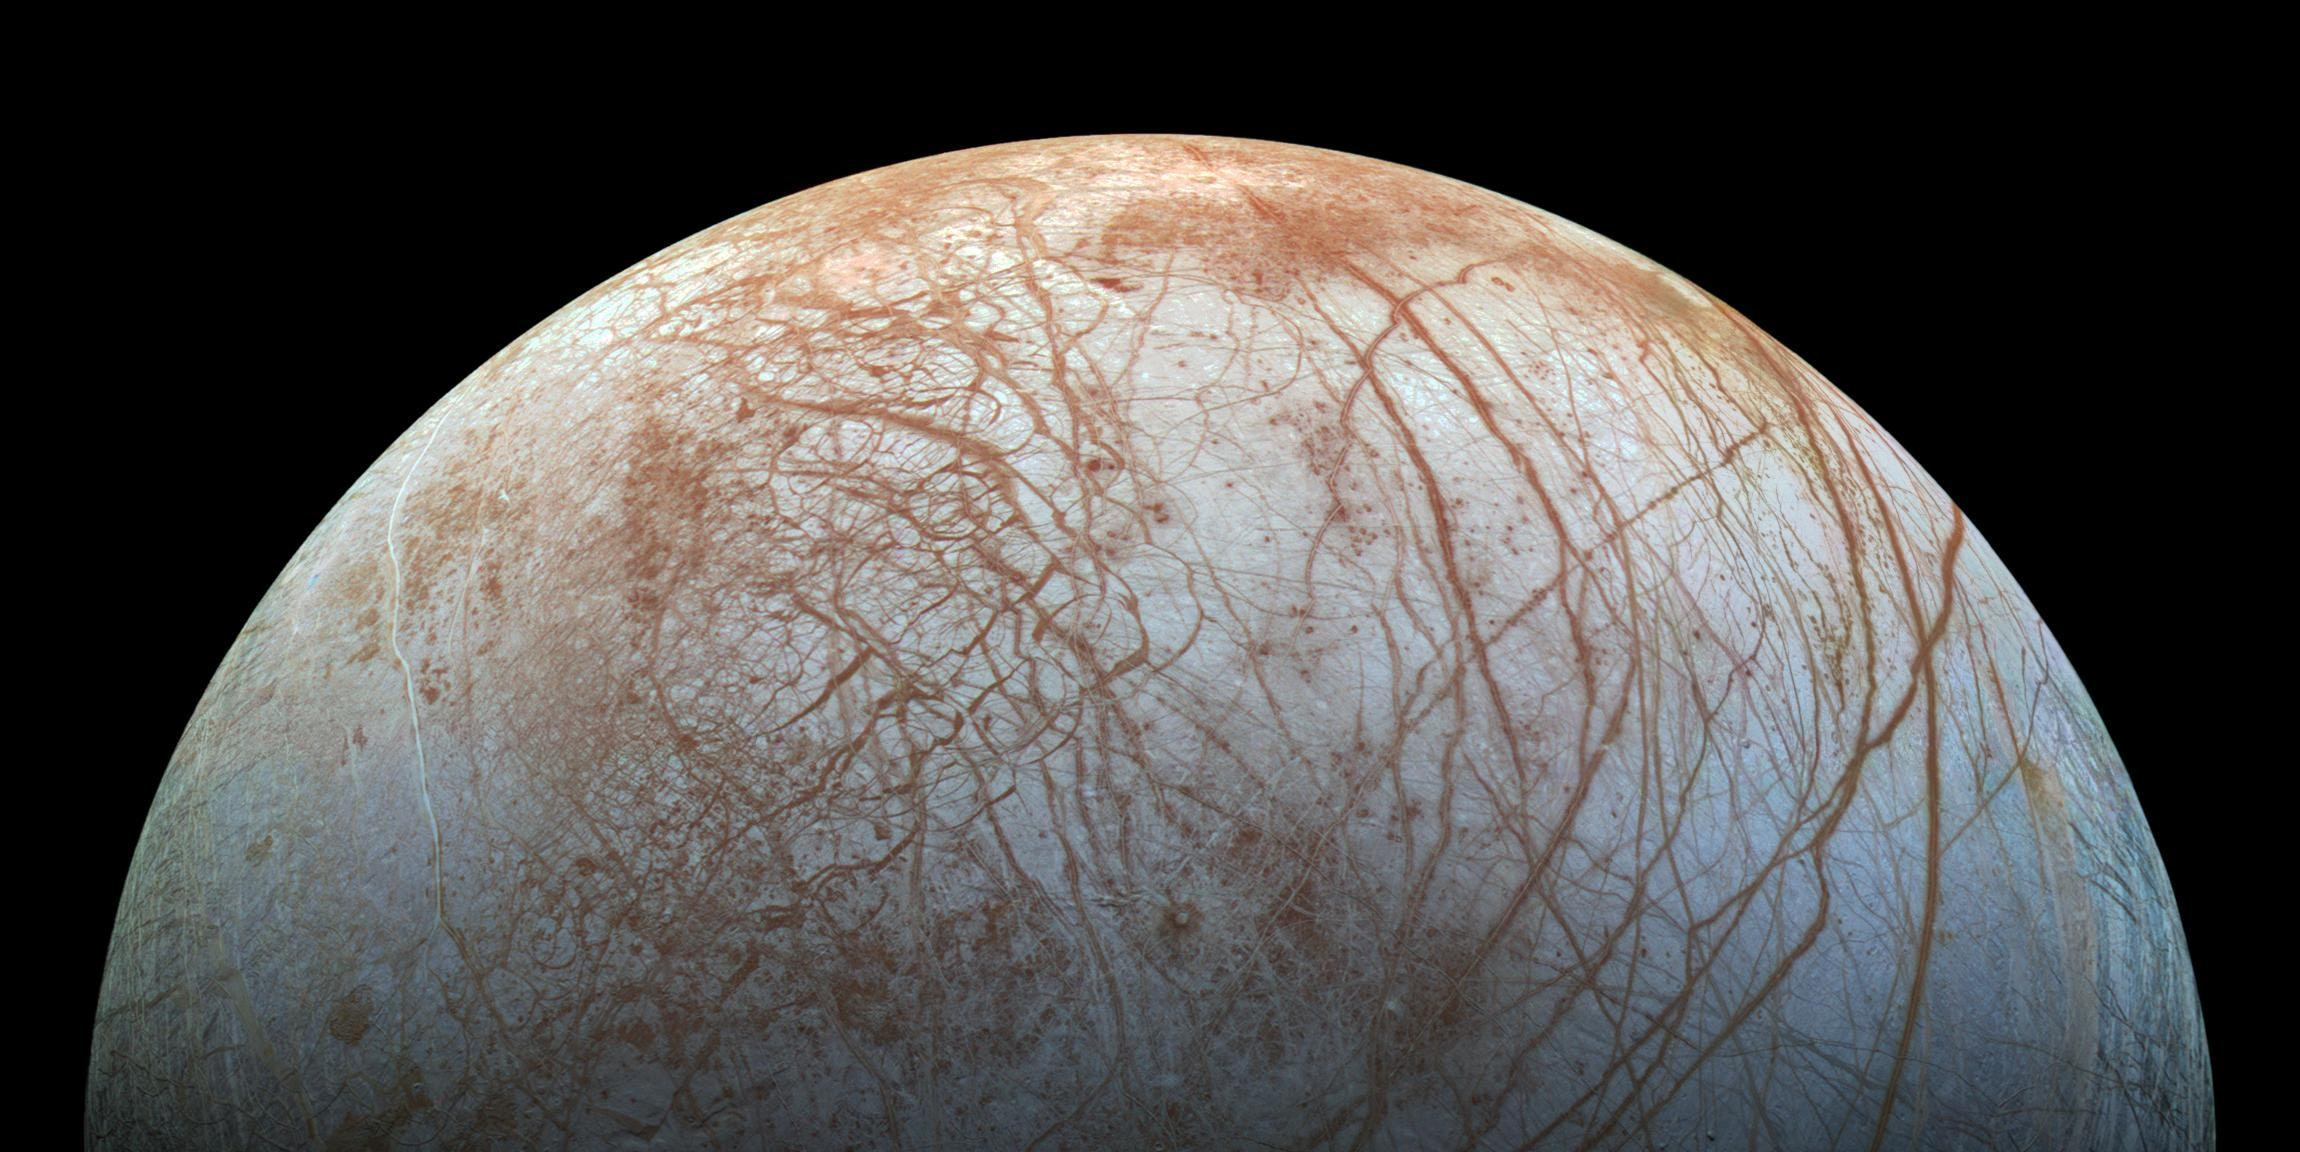 Will NASA Announce the Discovery of Life on Europa Next Week?